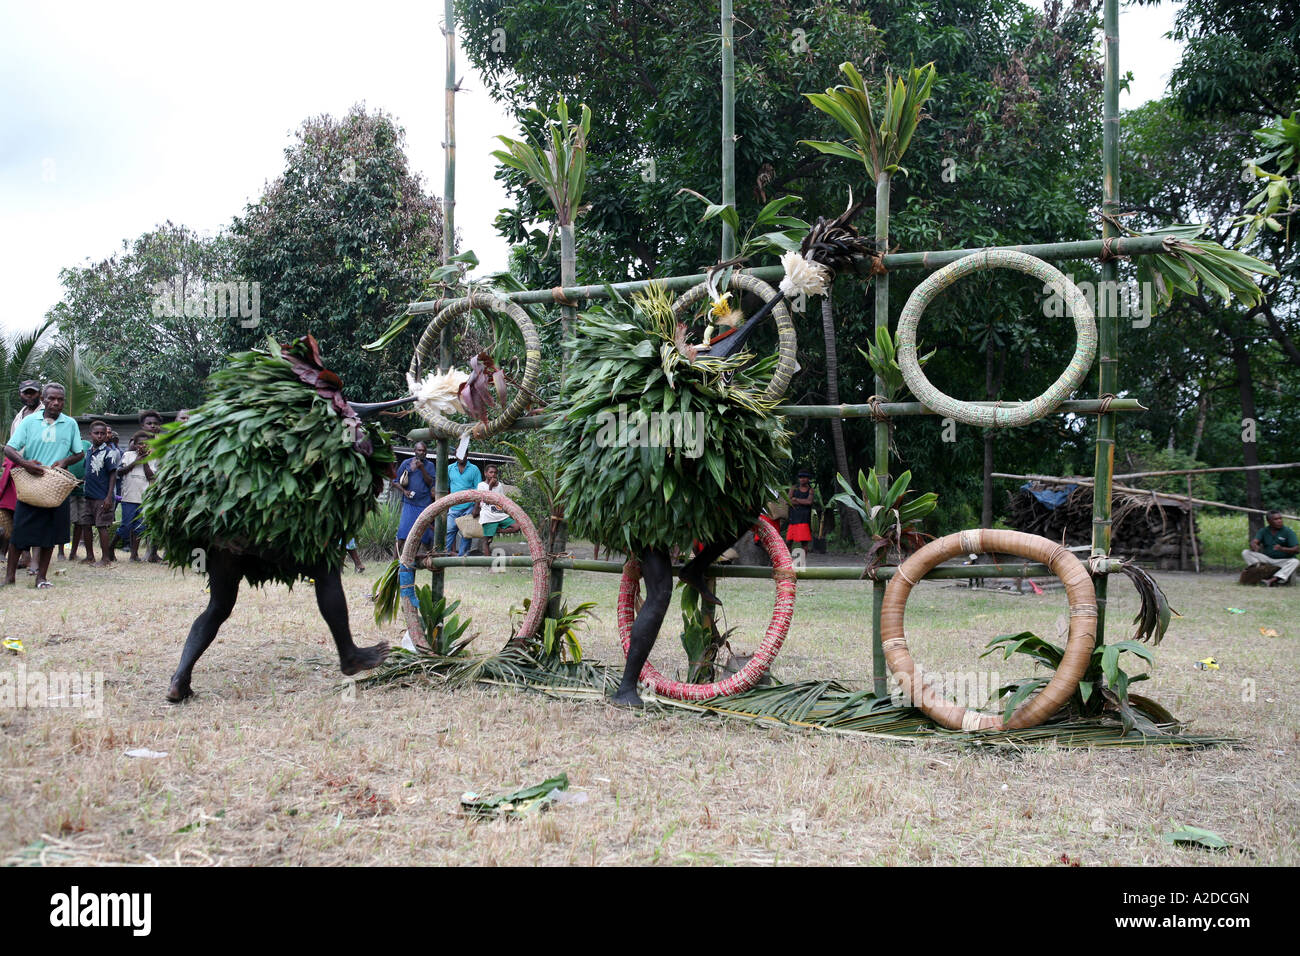 Tubuans perform at a Tolai Death Ceremony, Matupit Island, East New Britain, Papua New Guinea - Stock Image